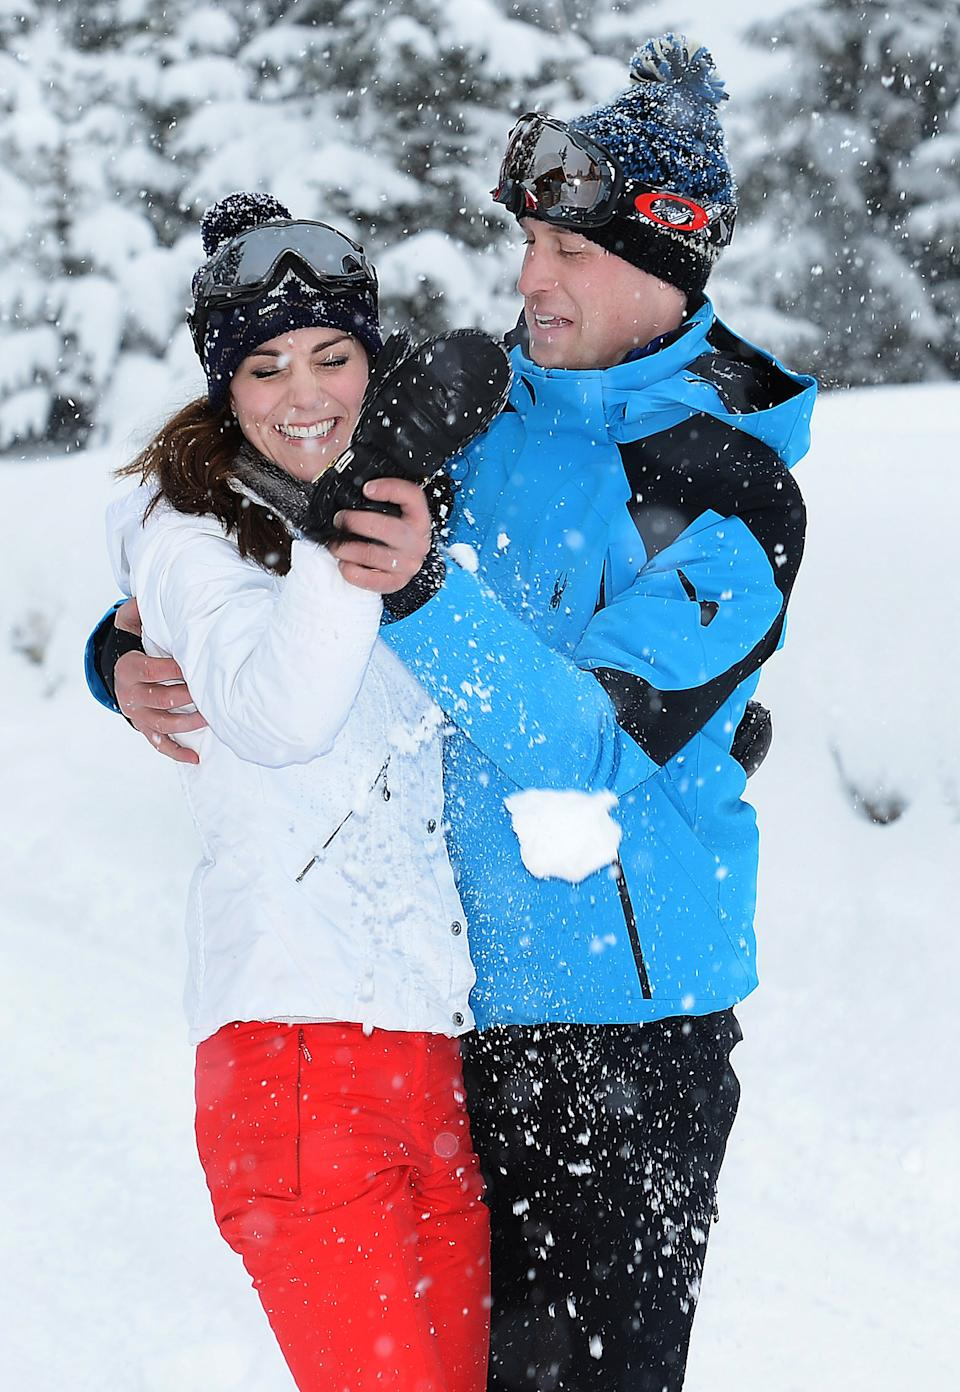 William gets his own back after the Duchess threw a snowball at him during a private break skiing in the French Alps in March 2016. (John Stillwell/AFP)